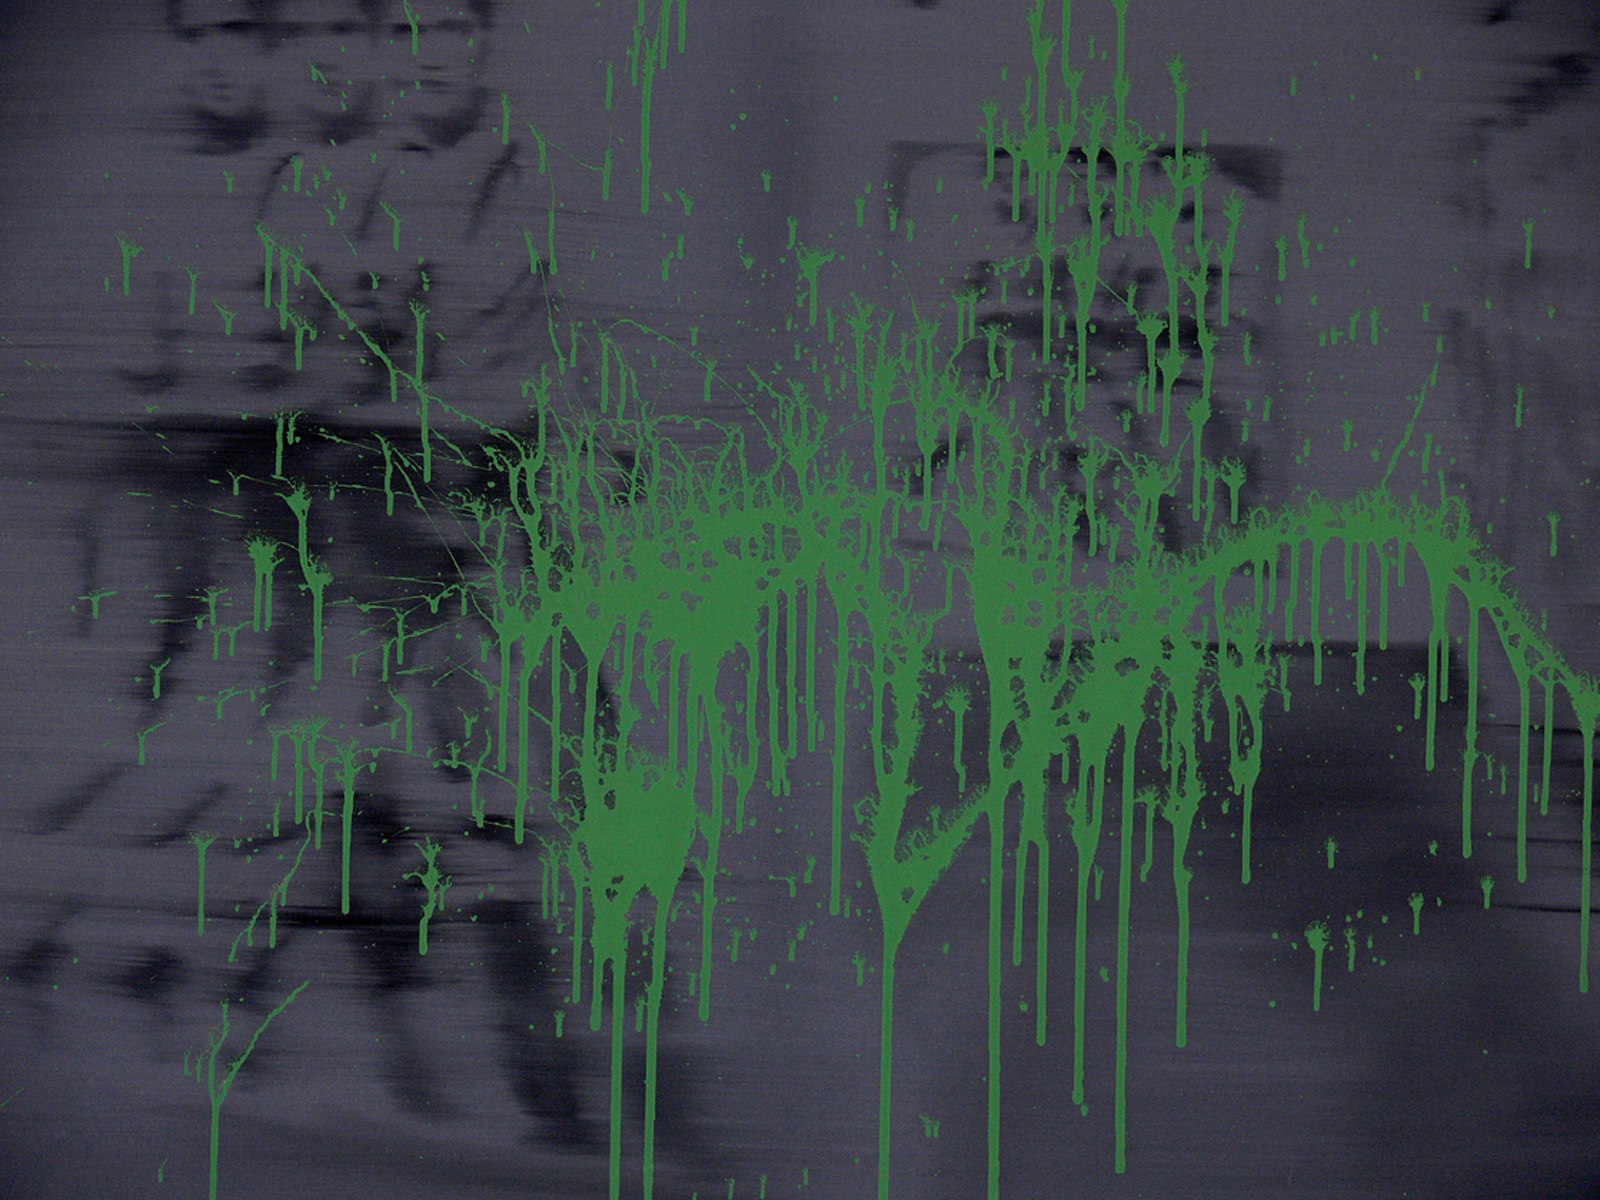 Untitled (Installation and a green stain)